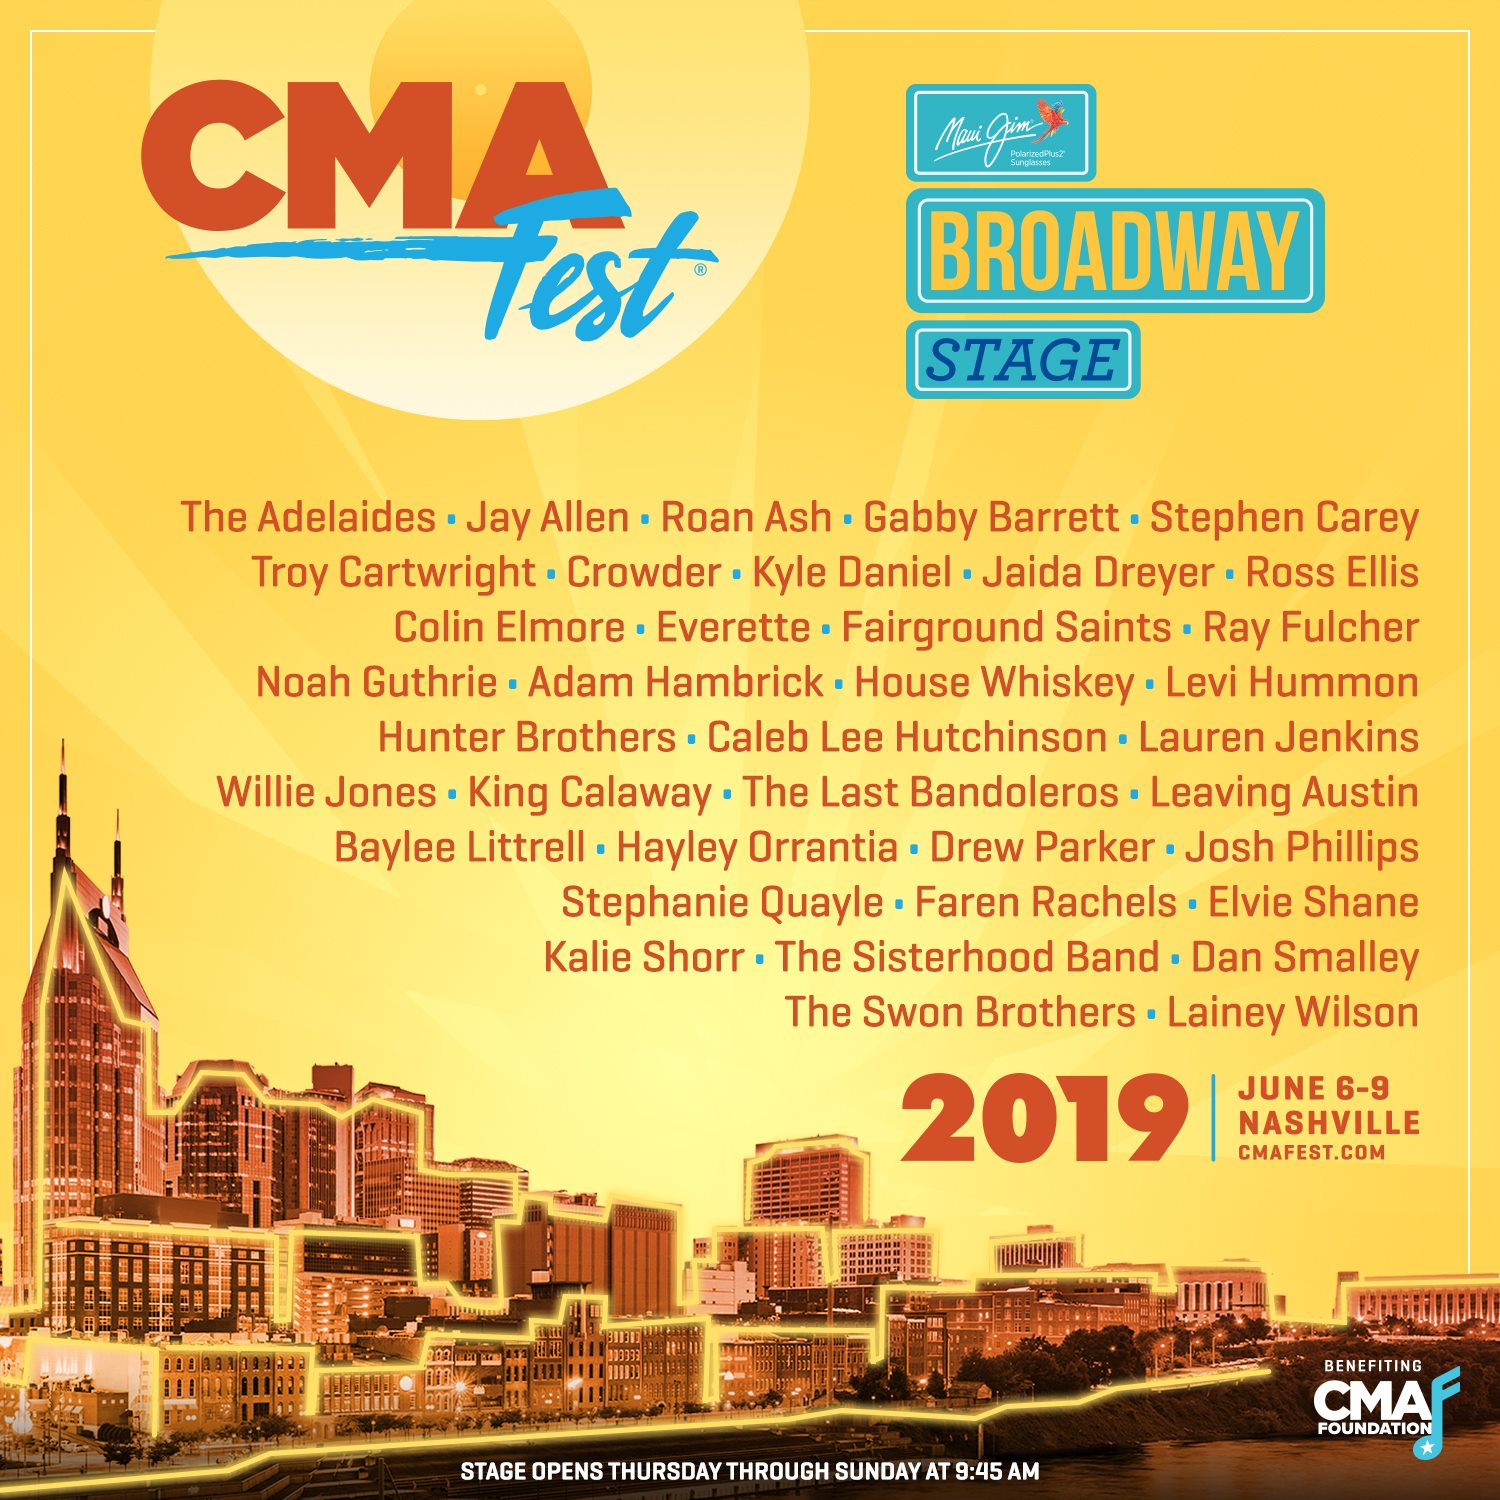 JUNE 6 - CMA FEST 2019 - MAUI JIM BROADWAY STAGE AT BRIDGESTONE PLAZA - NASHVILLE, TN